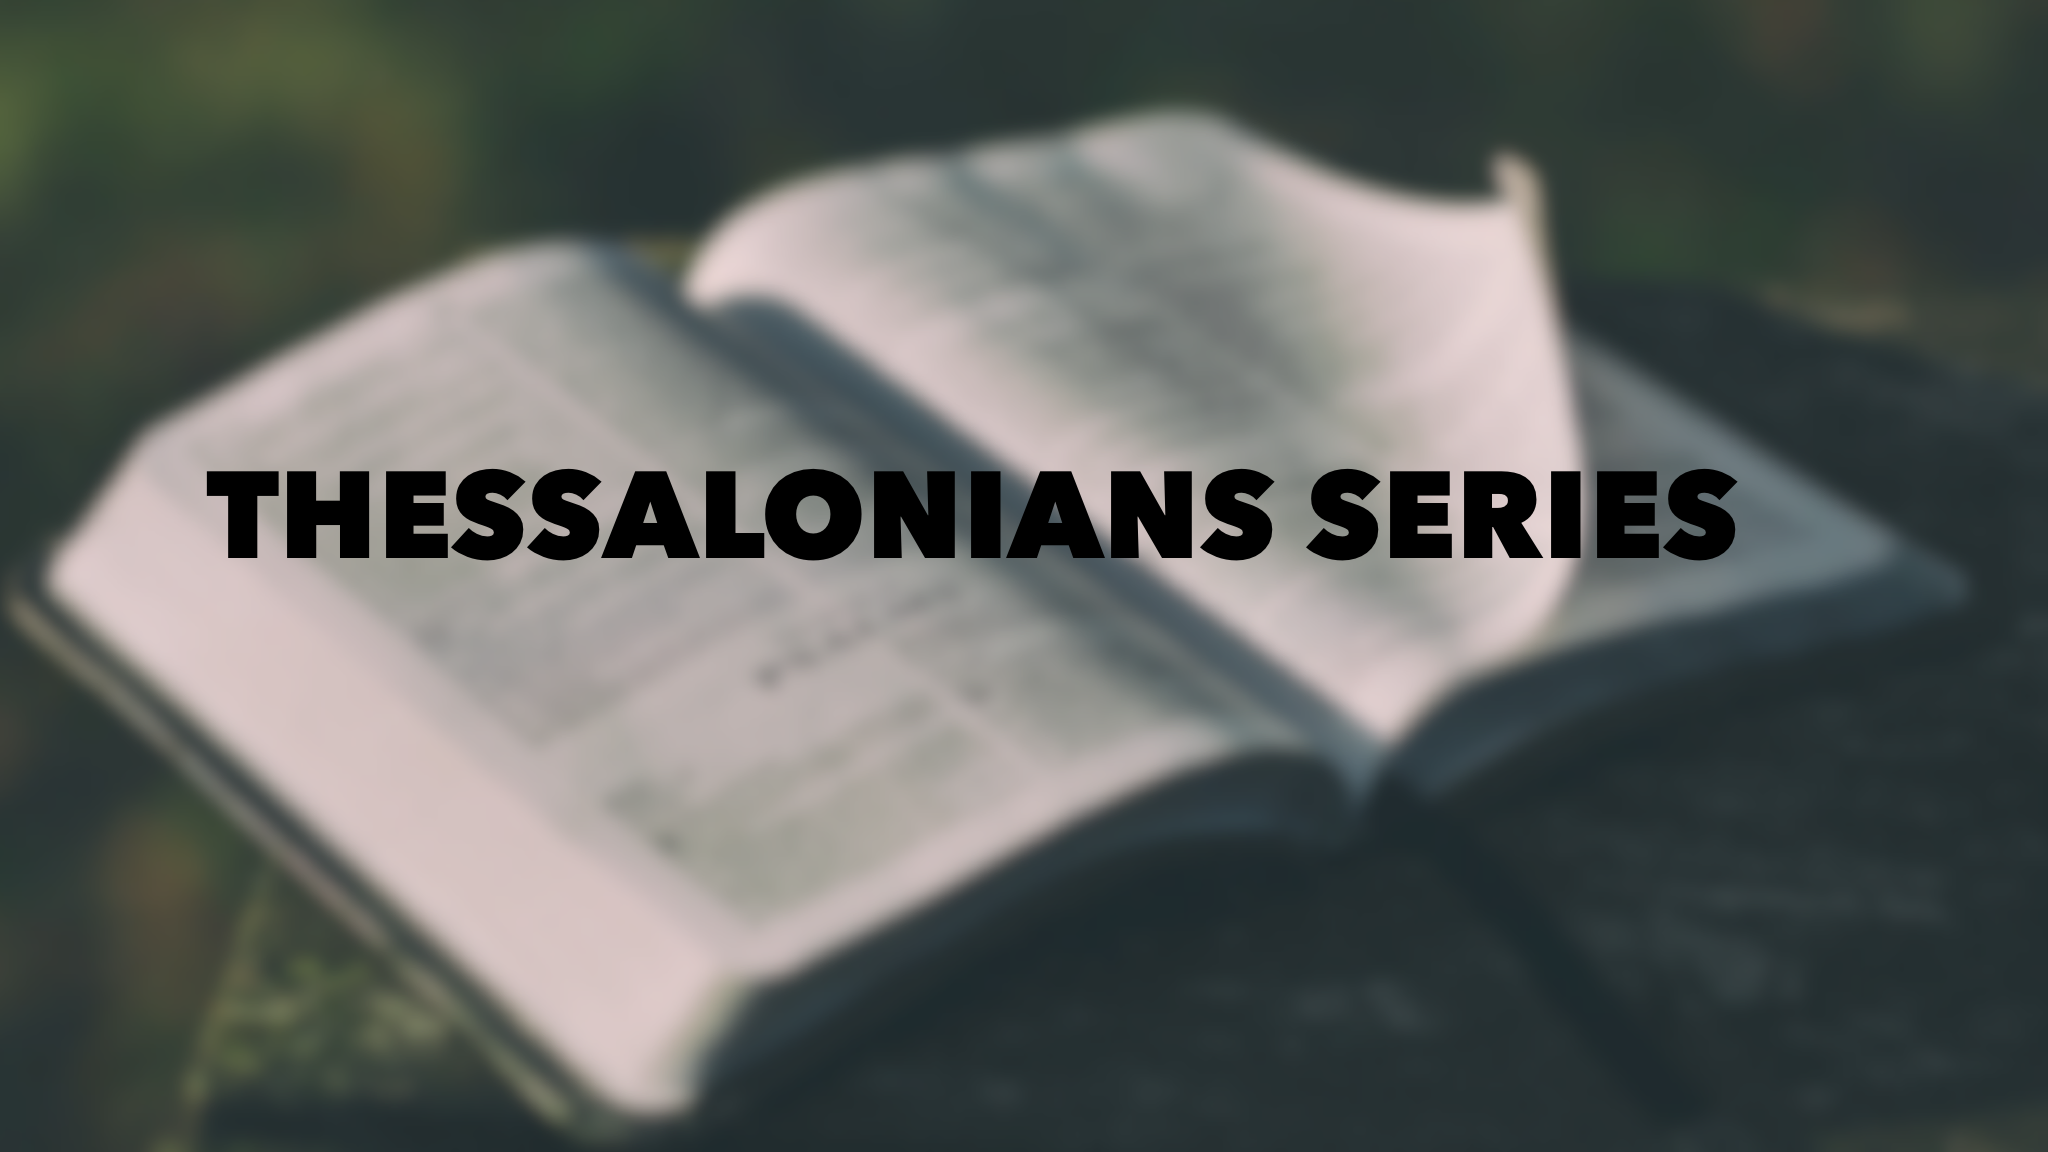 Thessalonians series.png